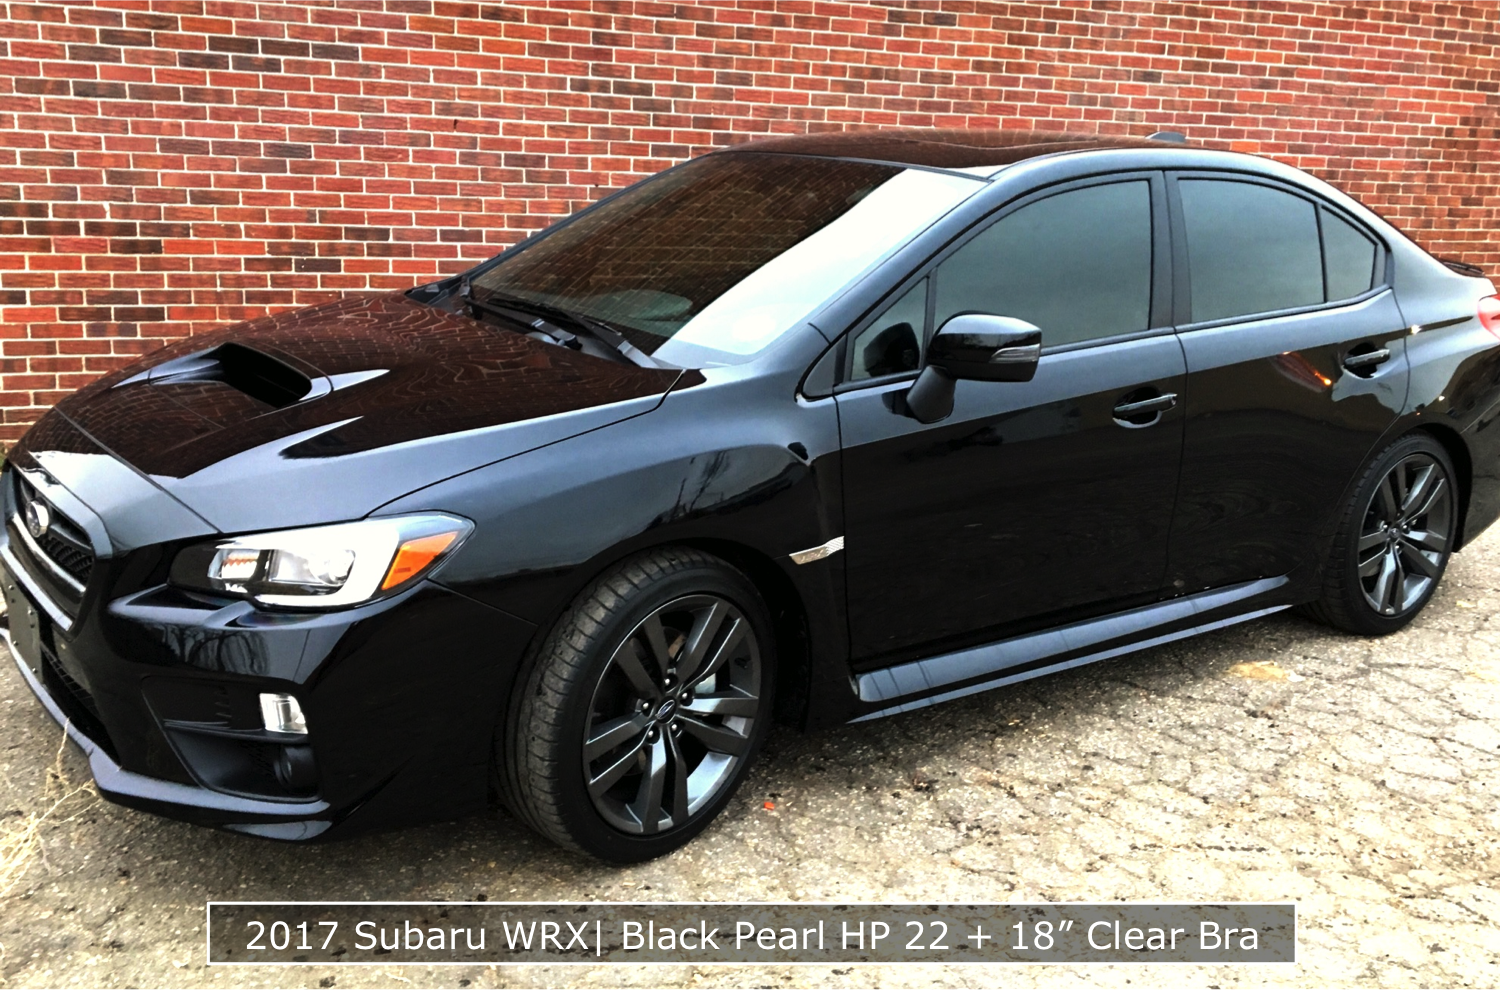 2017 Subaru With Denver Tinted Windows